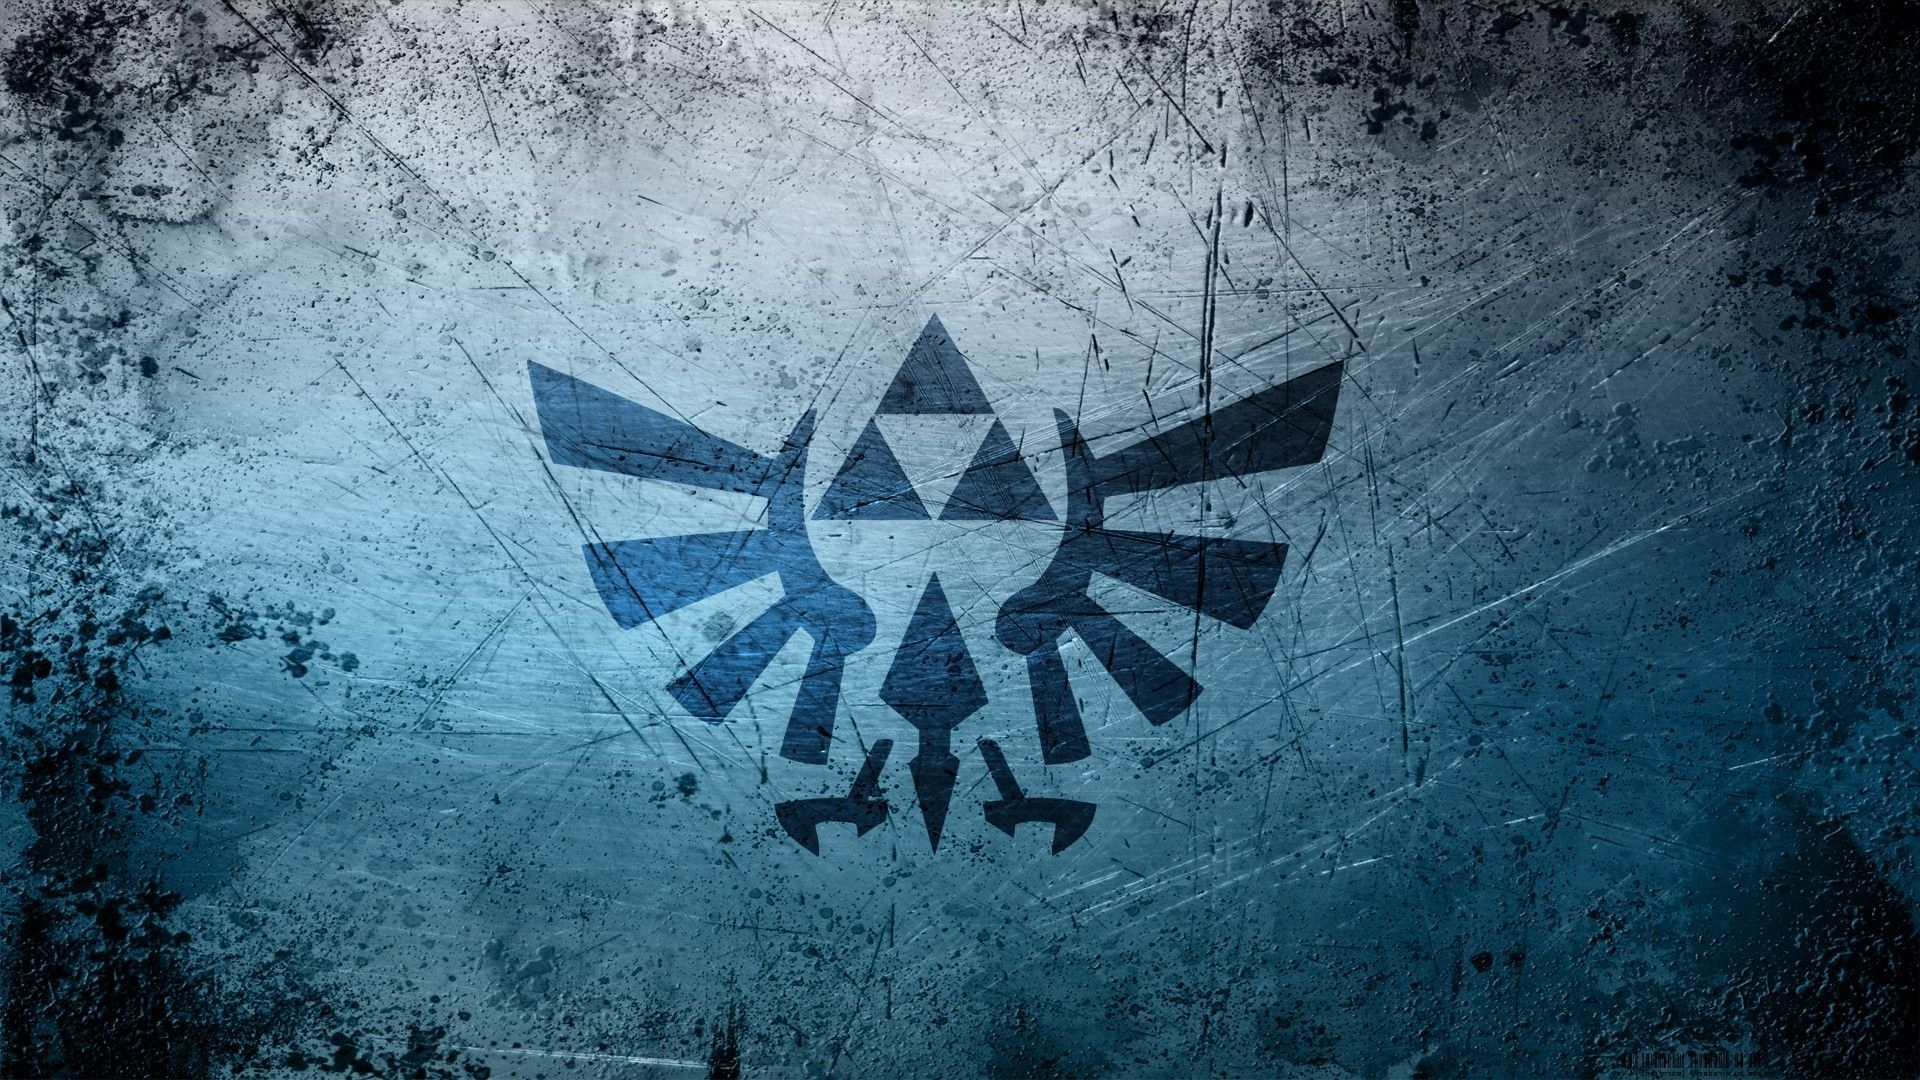 legend-of-zelda-wallpapers-hd-for-desktop - wallpaper.wiki